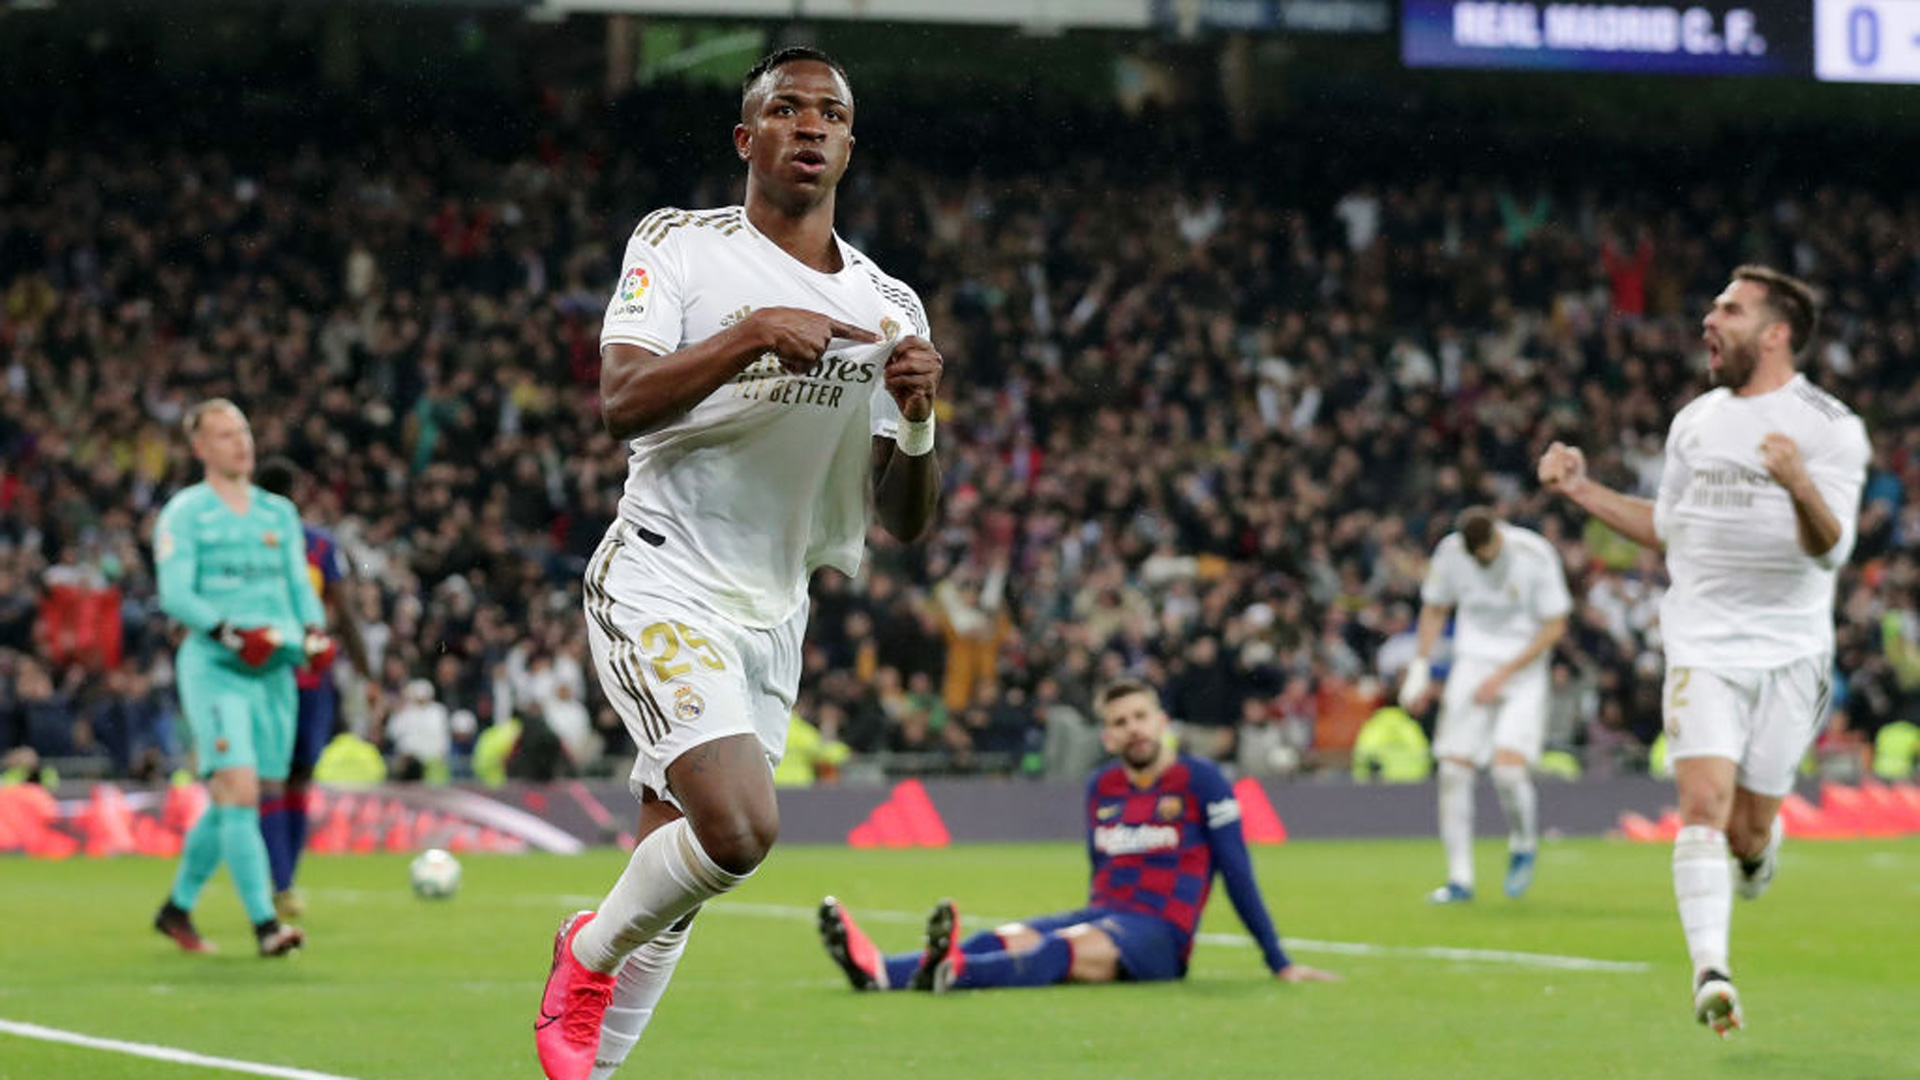 Real-Barça (2-0) - Madrid s'adjuge le Clasico et la place de leader